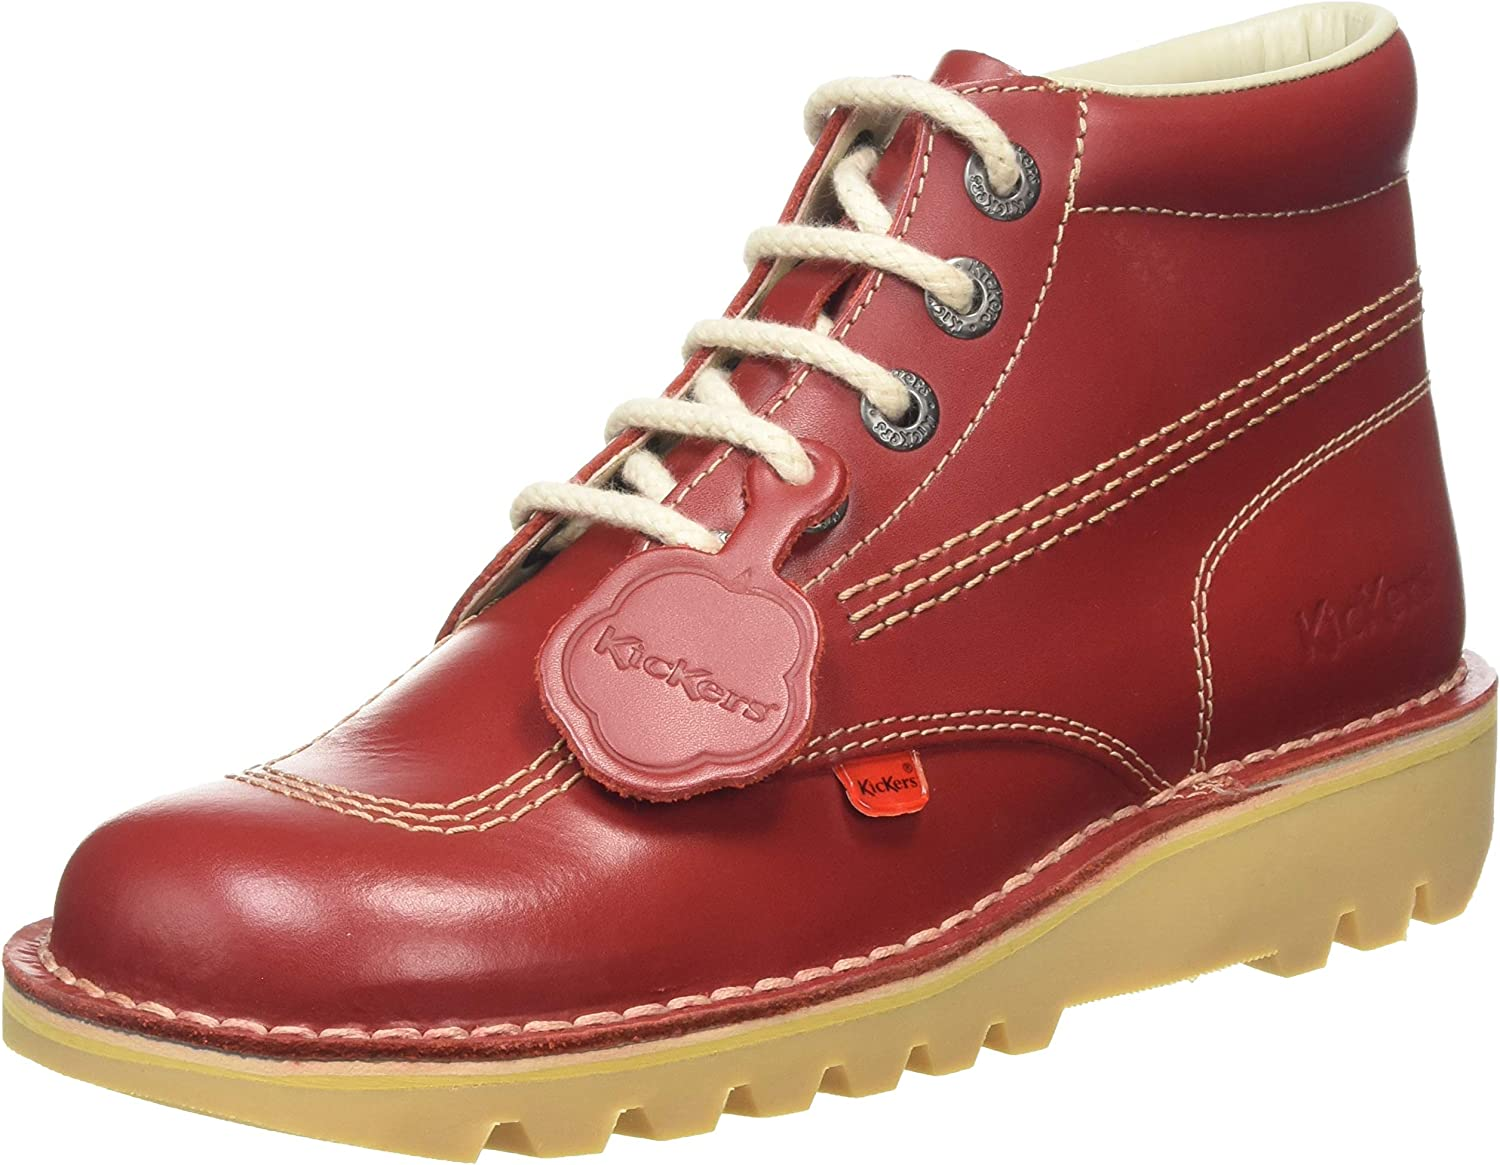 Kickers Men's Ankle Classic Boots